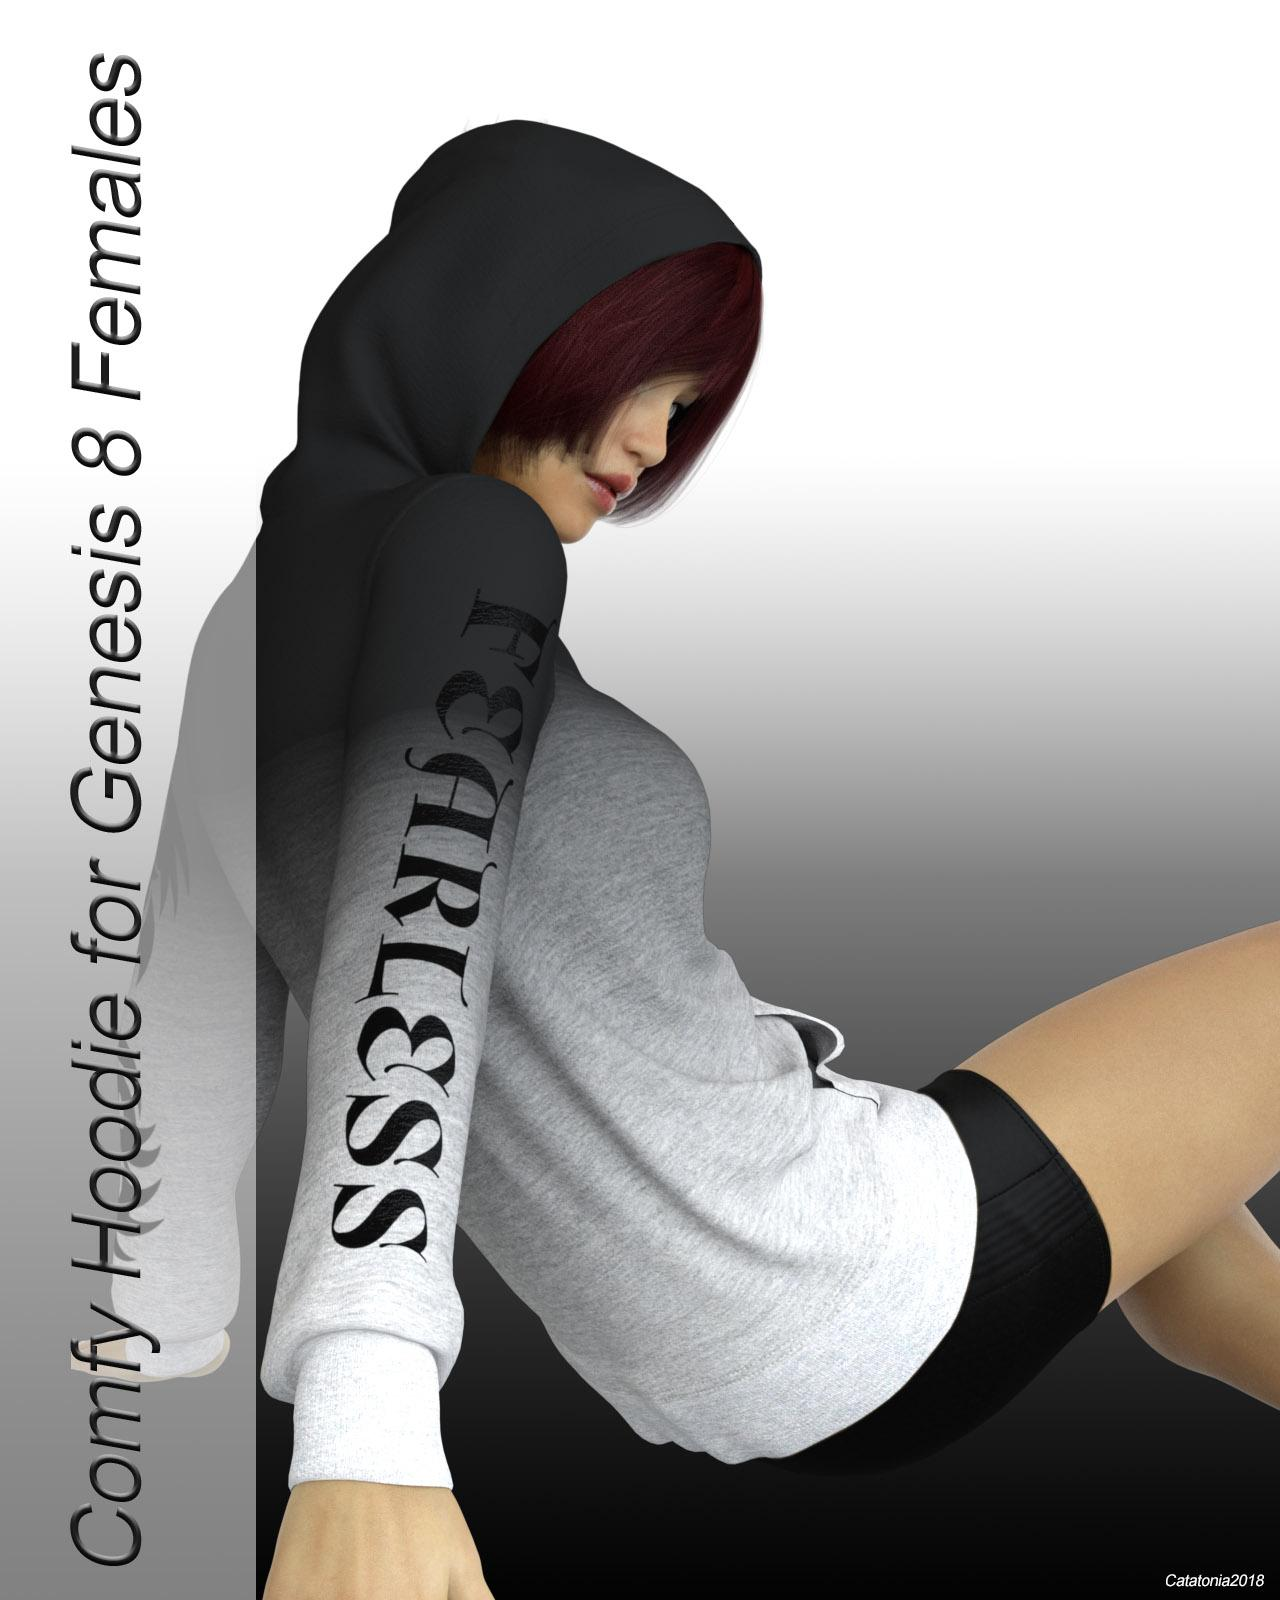 dforce Comfy Hoodie for Genesis 8